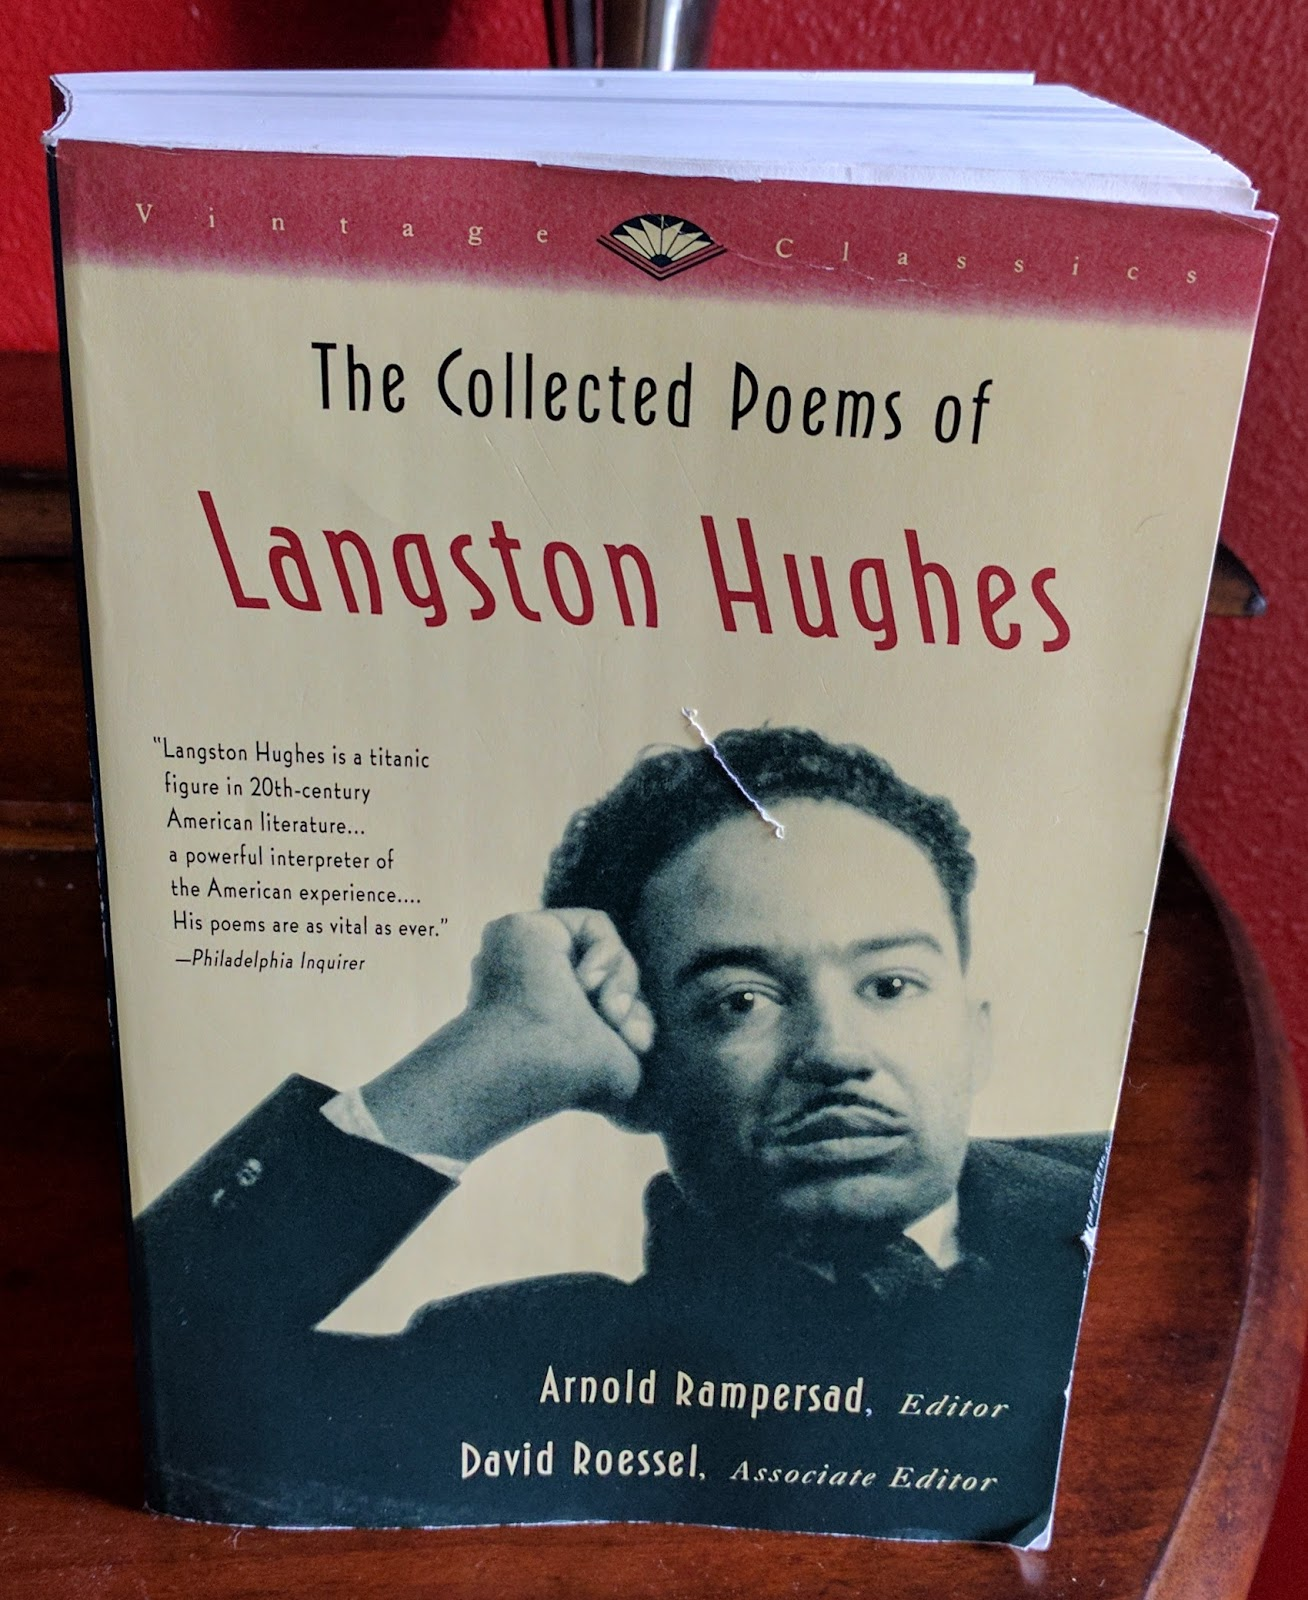 literary critique of langston hughes Langston hughes james langston hughes was born february 1, 1902, in joplin, missouri his parents divorced when he was a small child he was raised by his grandmother until he was thirteen, then moved with his mother to cleveland, ohio.